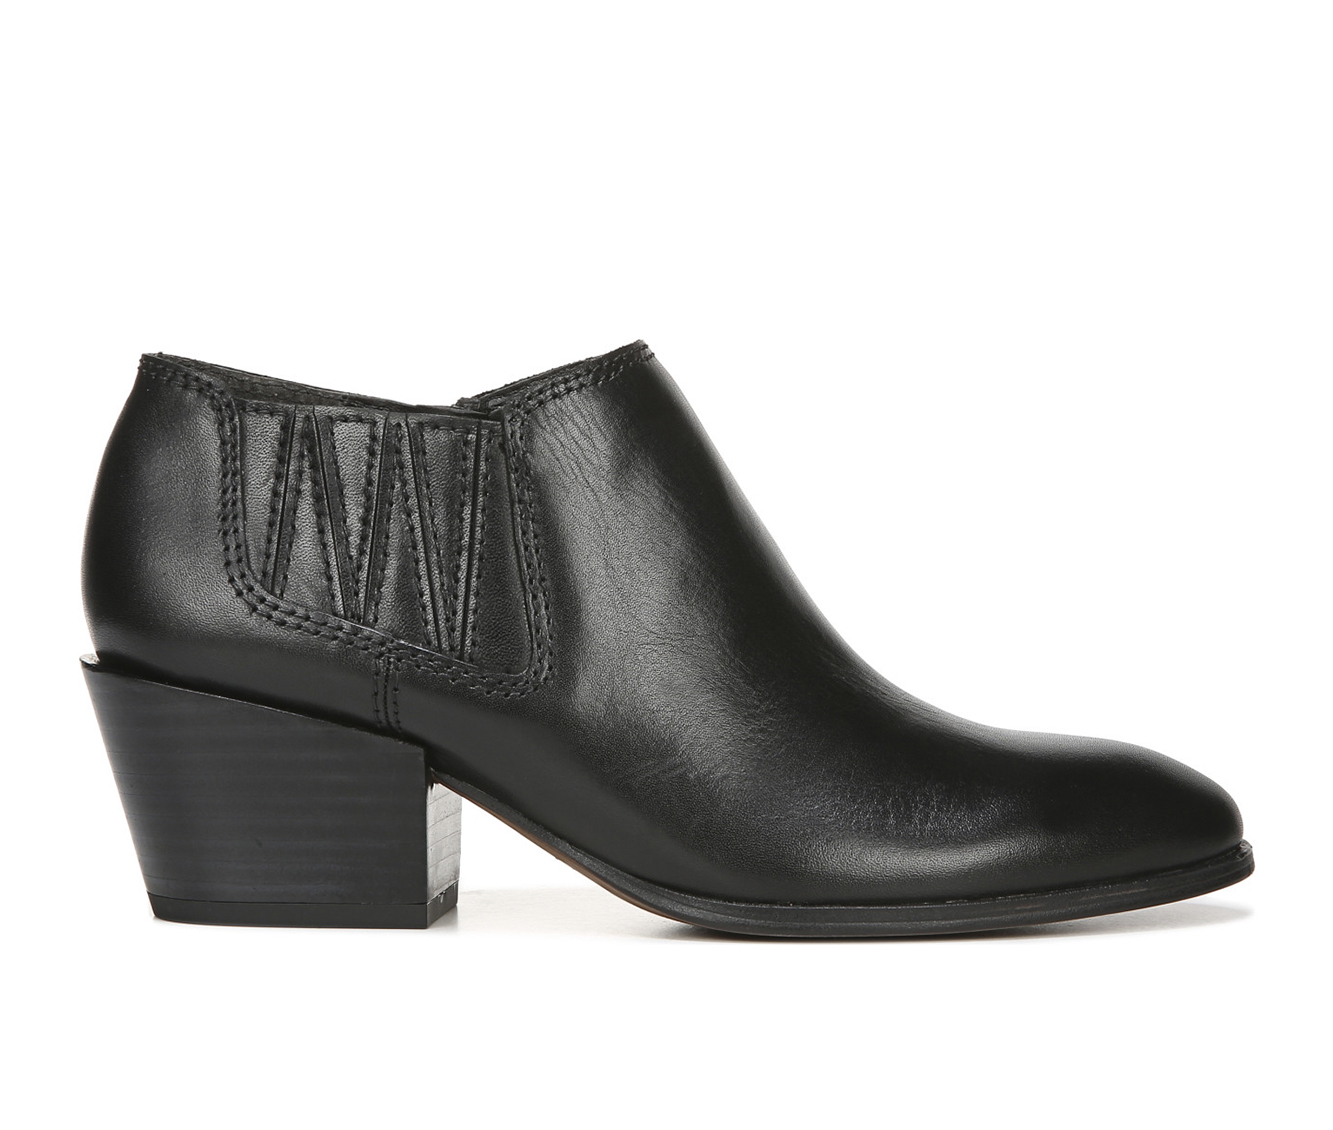 Franco Sarto Dylann Women's Boots (Black - Leather)